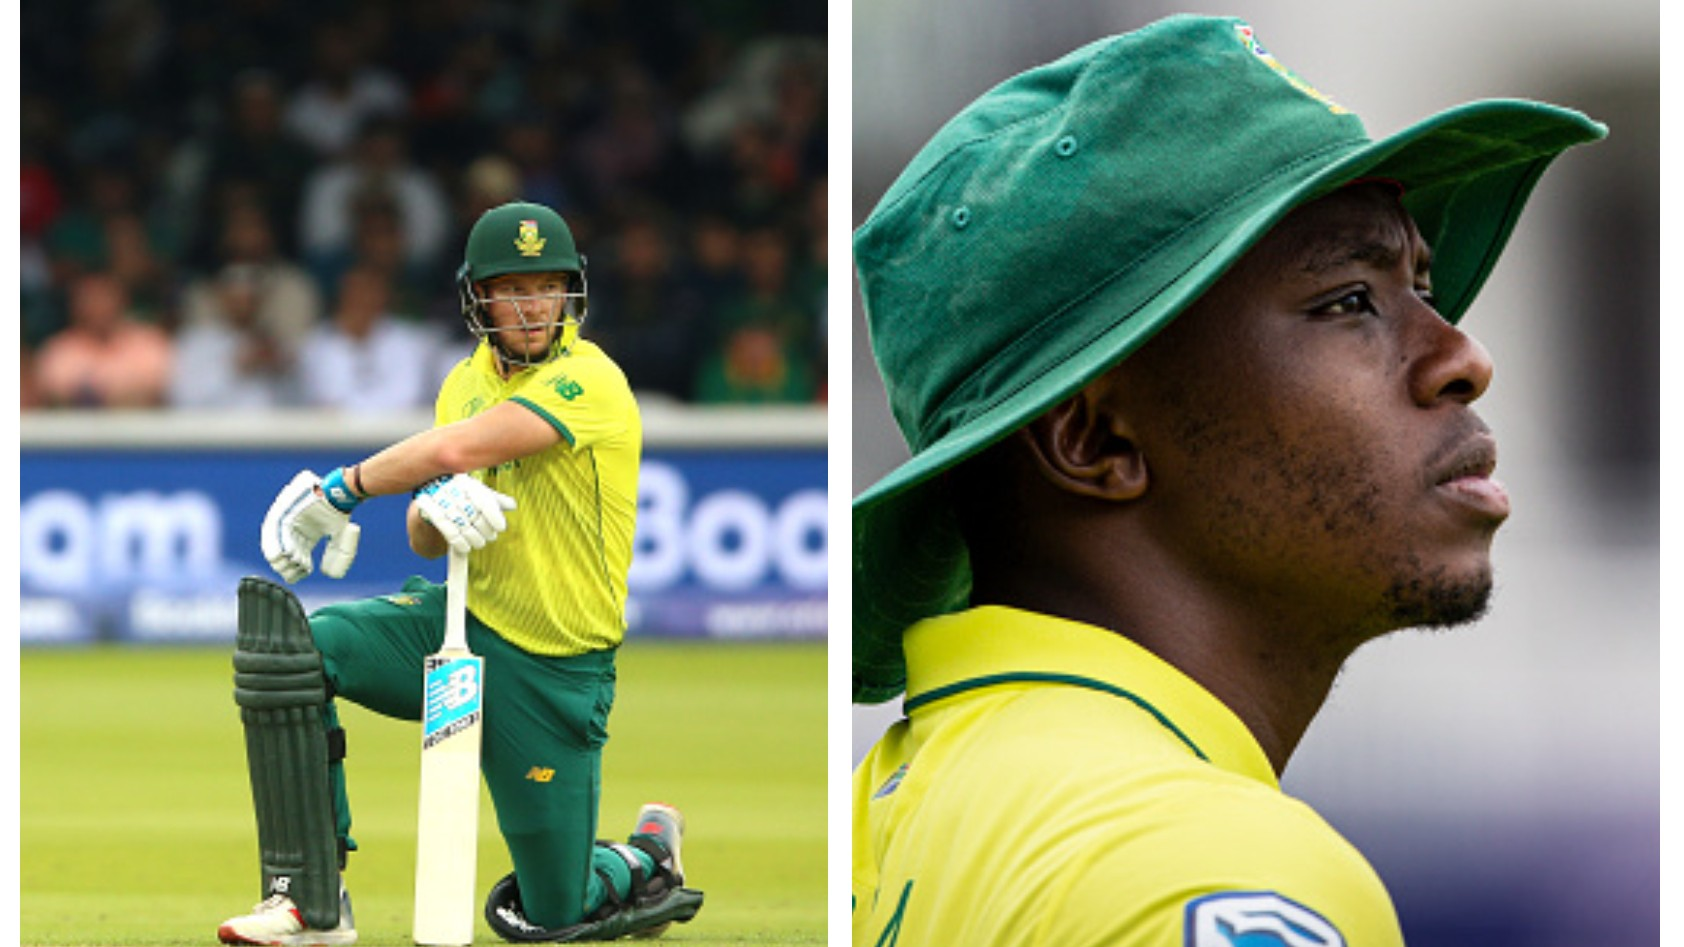 CWC 2019: Miller and Rabada express their disappointment after South Africa's World Cup hopes end